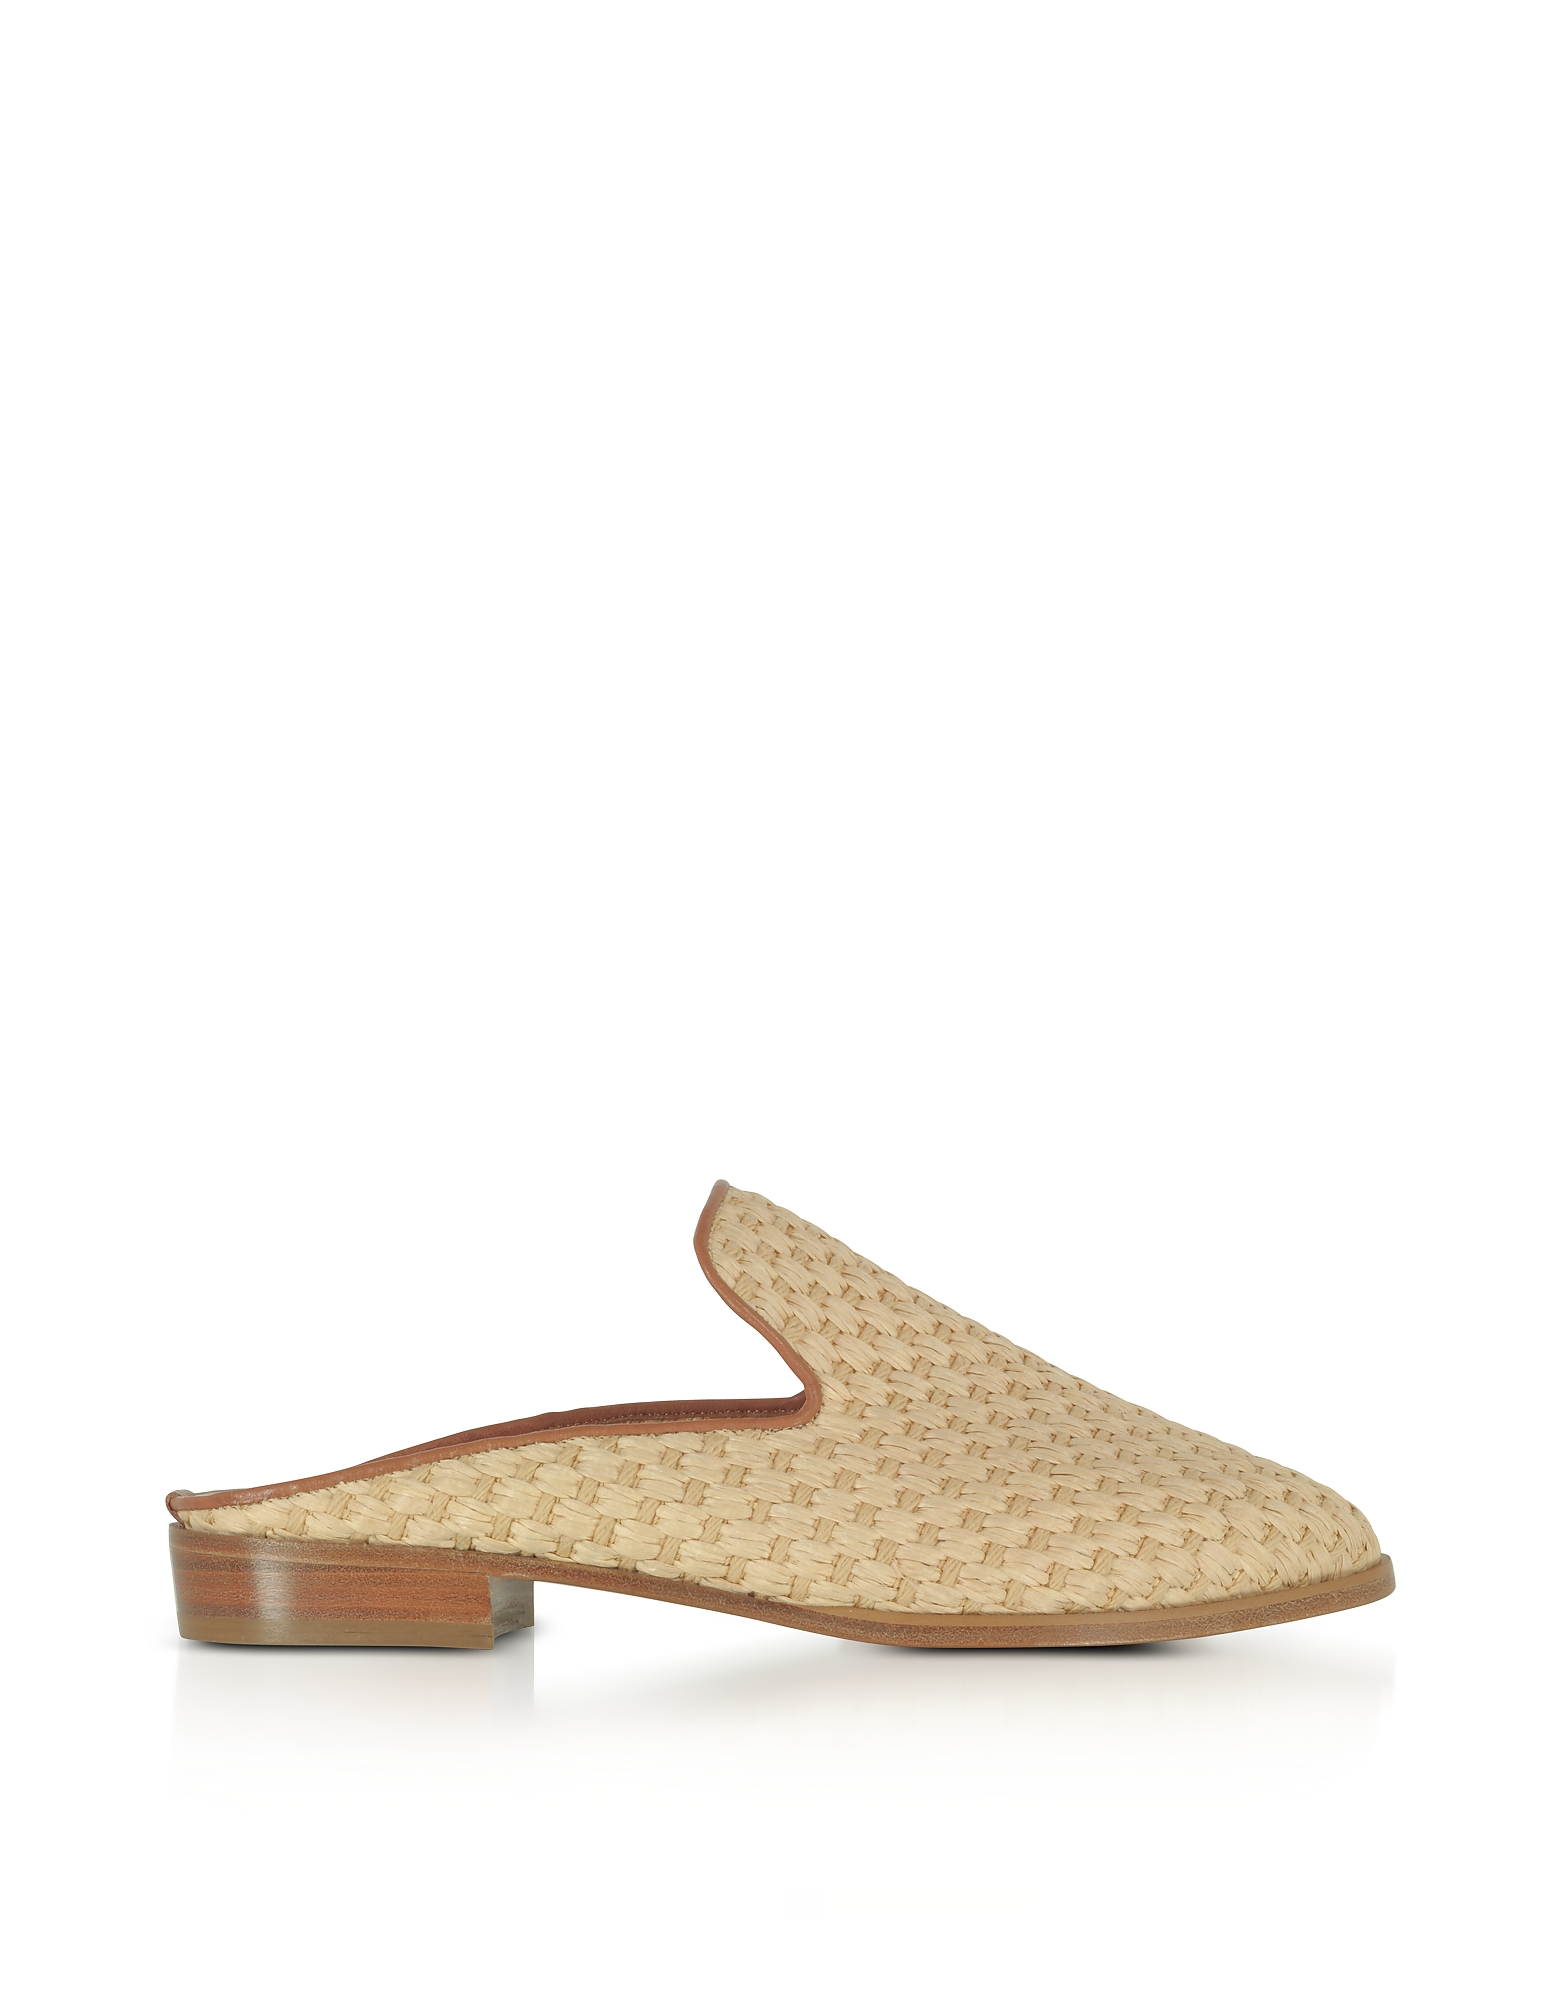 Robert Clergerie Shoes, Aliceop Natural Woven Raffia and Terracotta Brown Leather Flat Mules